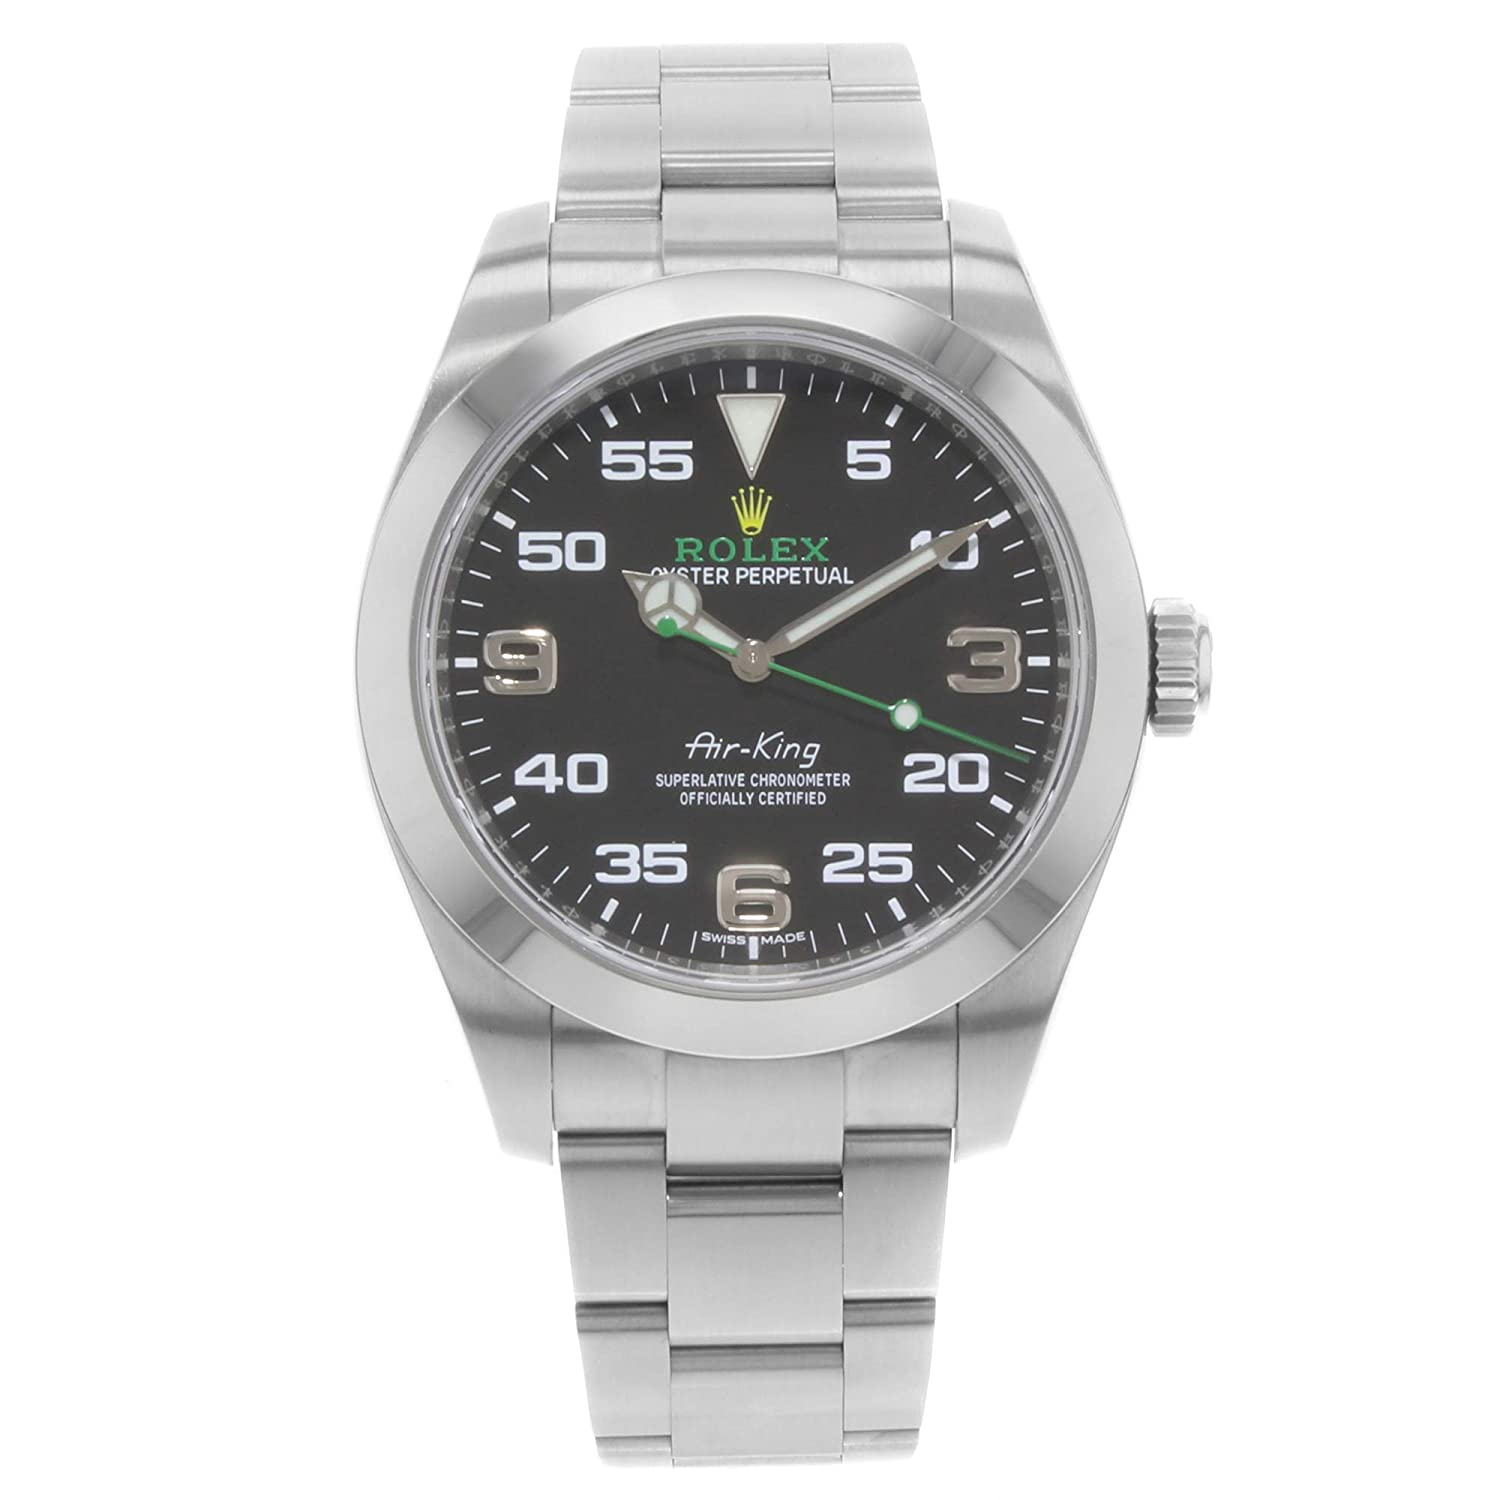 Rolex Oyster Perpetual Air King 116900